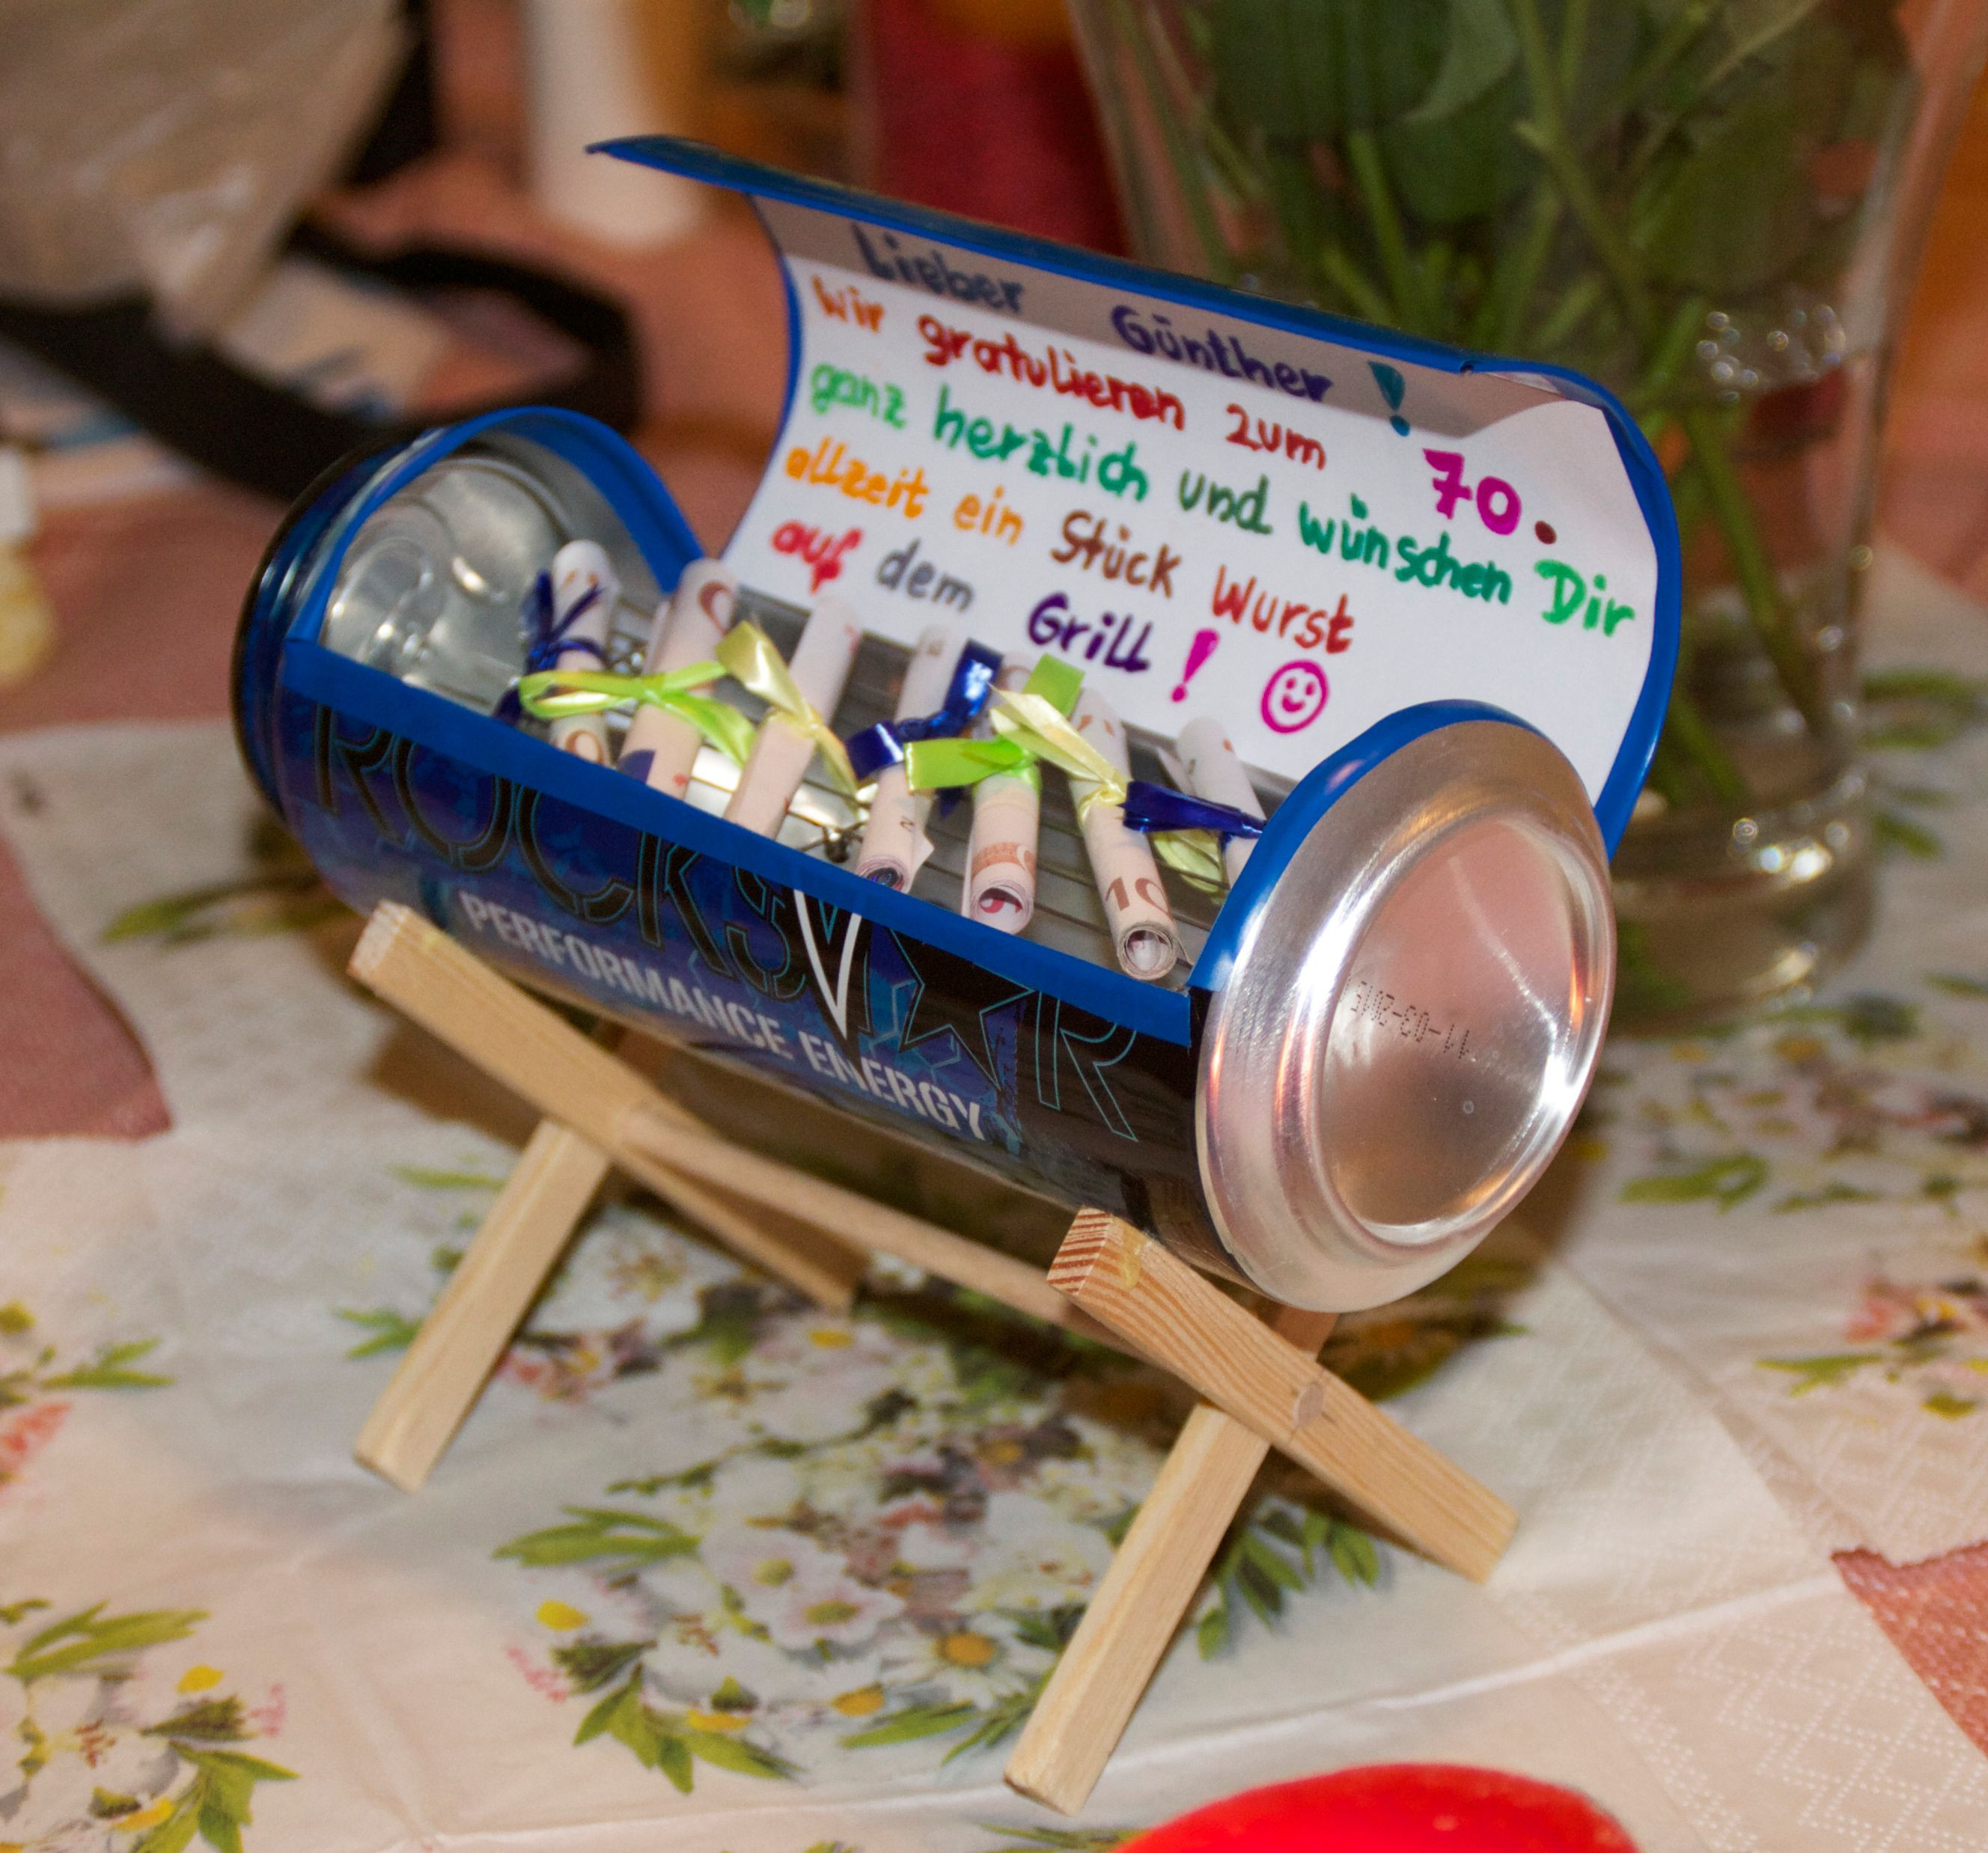 Grill Geschenke  Craft a tiny grill from a beer can Great use for ts of